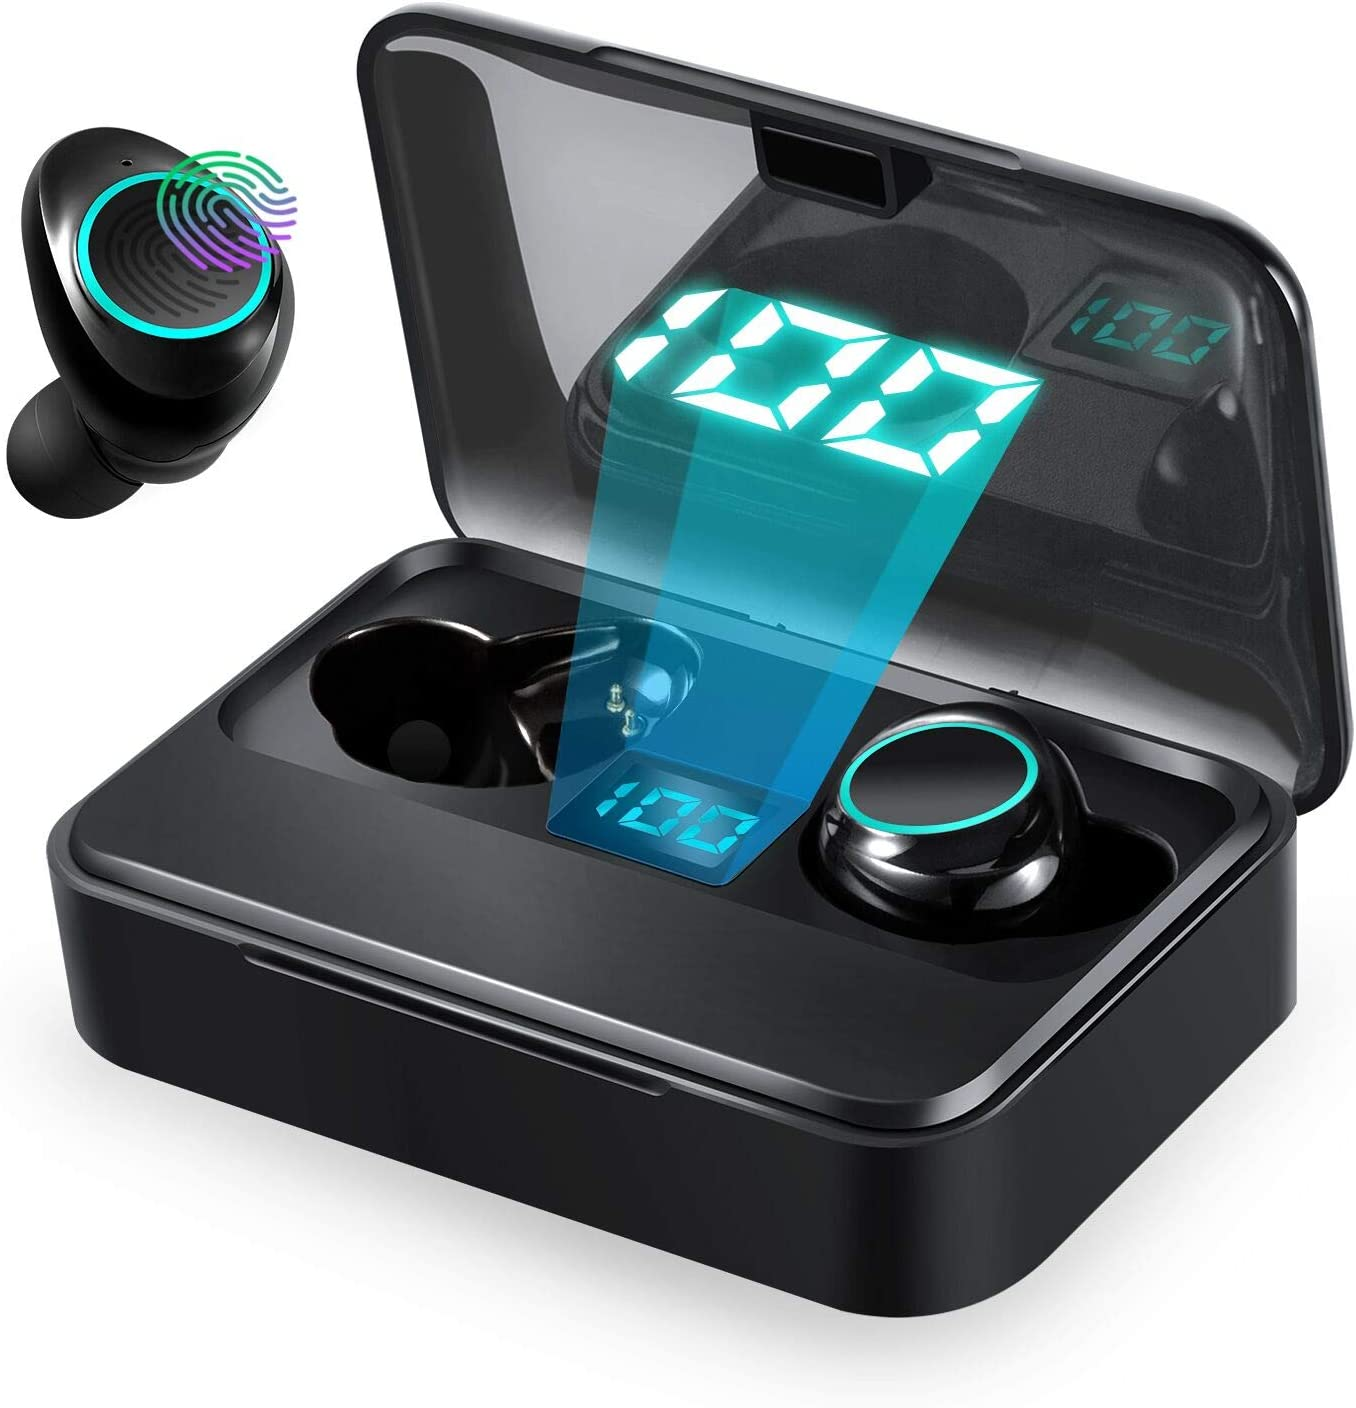 Wireless Earbuds,Newmsnr TWS Bluetooth 5.0 Headphones with 3500mAh Charging Case LED Battery Display 140H Playtime 3D Stereo Sound Noise Canceling IPX7 Waterproof Sport Headset Earphones (Black)